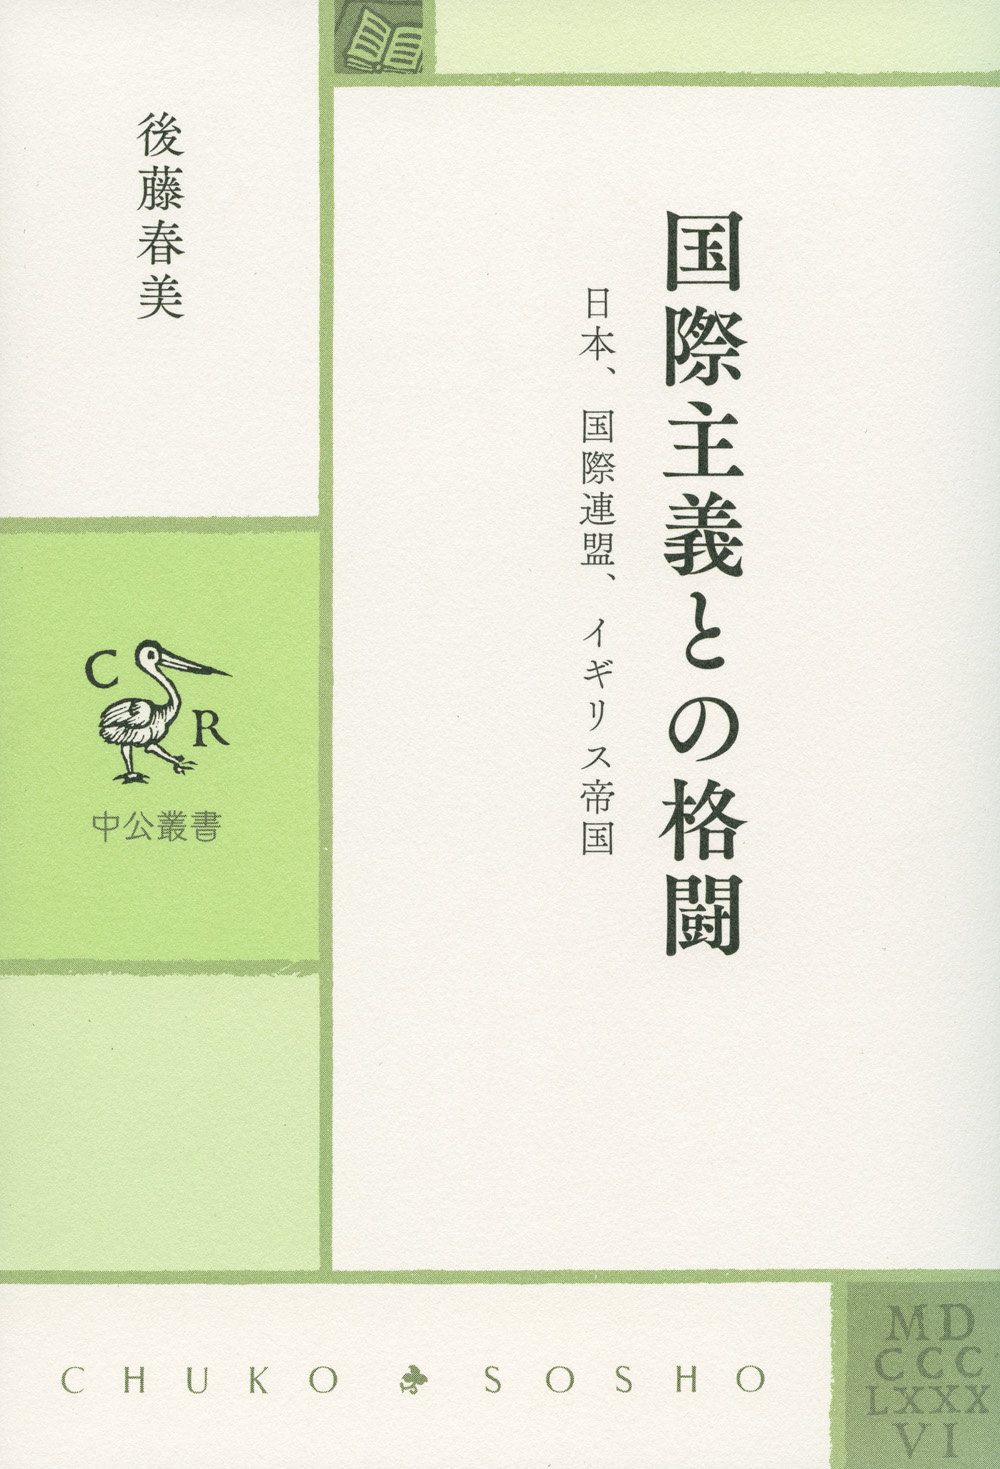 Book title, publisher, and author name separated by borders in bright green on pale golden-yellow cover